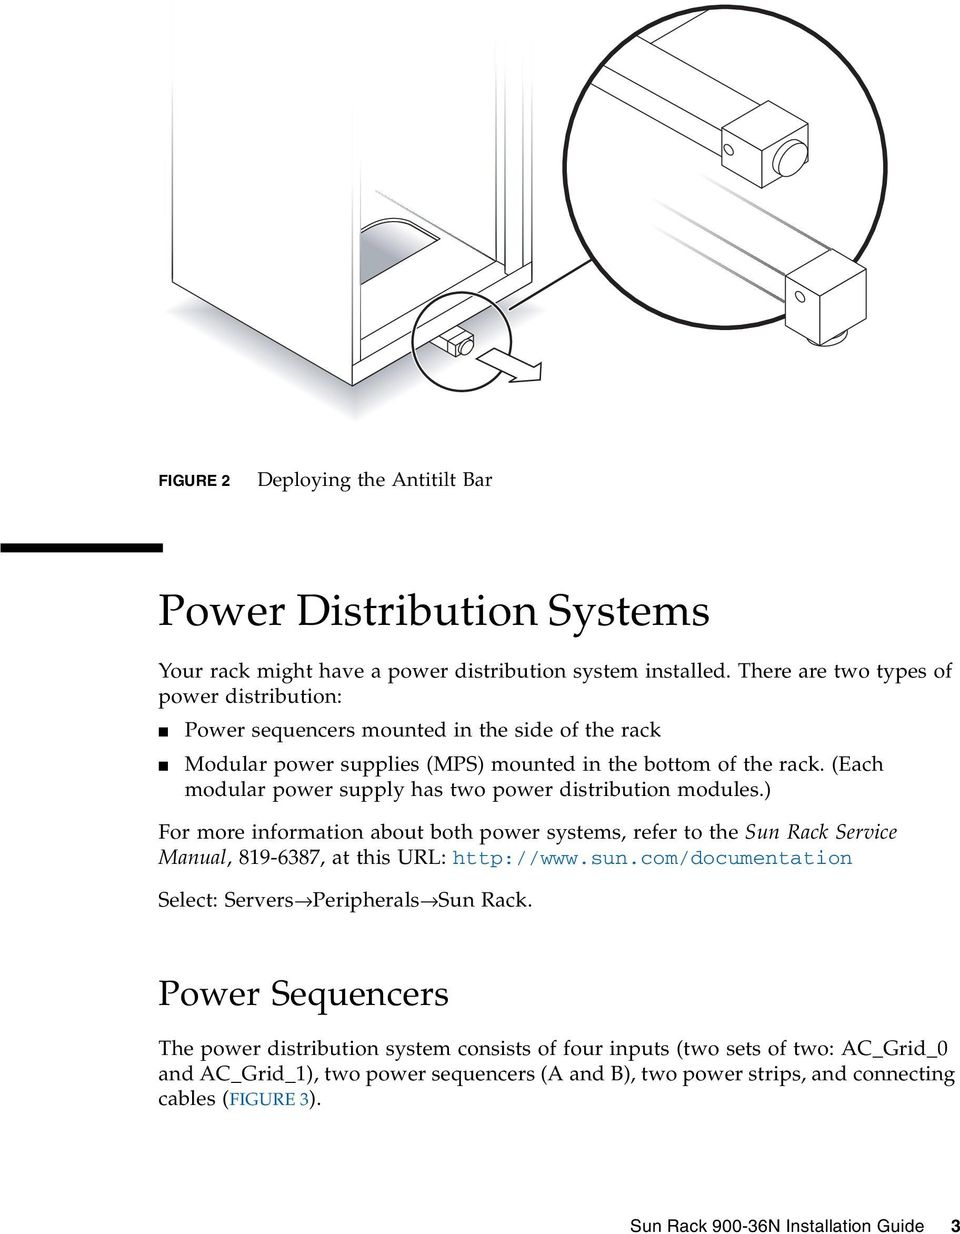 (Each modular power supply has two power distribution modules.) For more information about both power systems, refer to the Sun Rack Service Manual, 819-6387, at this URL: http://www.sun.